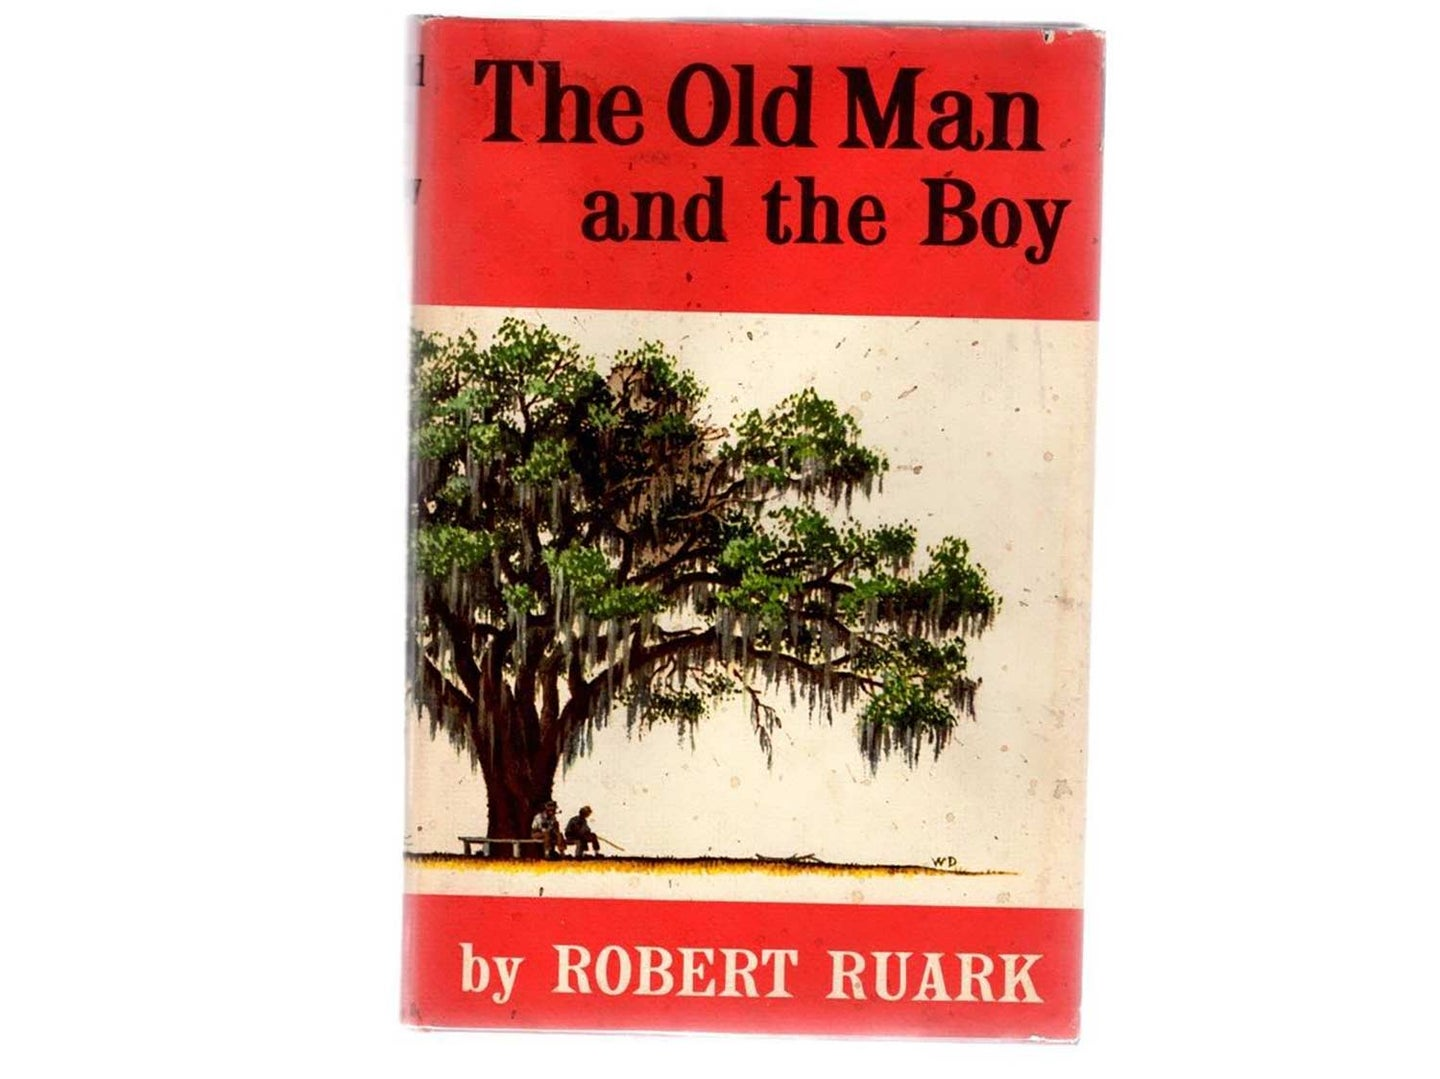 The book cover of Robert Ruark's book: The Old Man and the Boy.